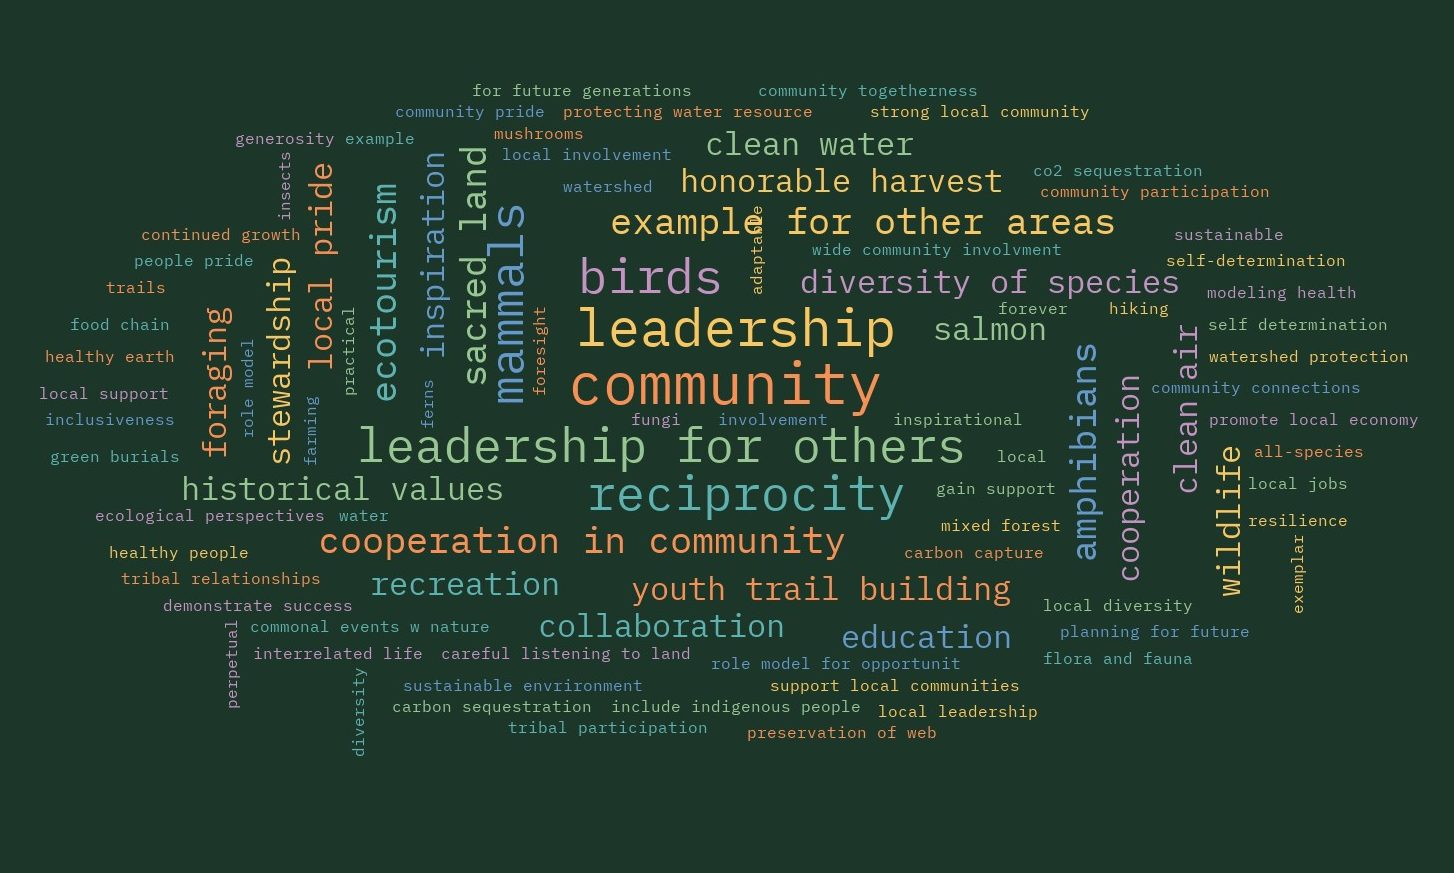 """Word cloud of multi-colored text on a dark green background with the words """"community,"""" """"leadership"""" and """"reciprocity"""" largest and at the center."""